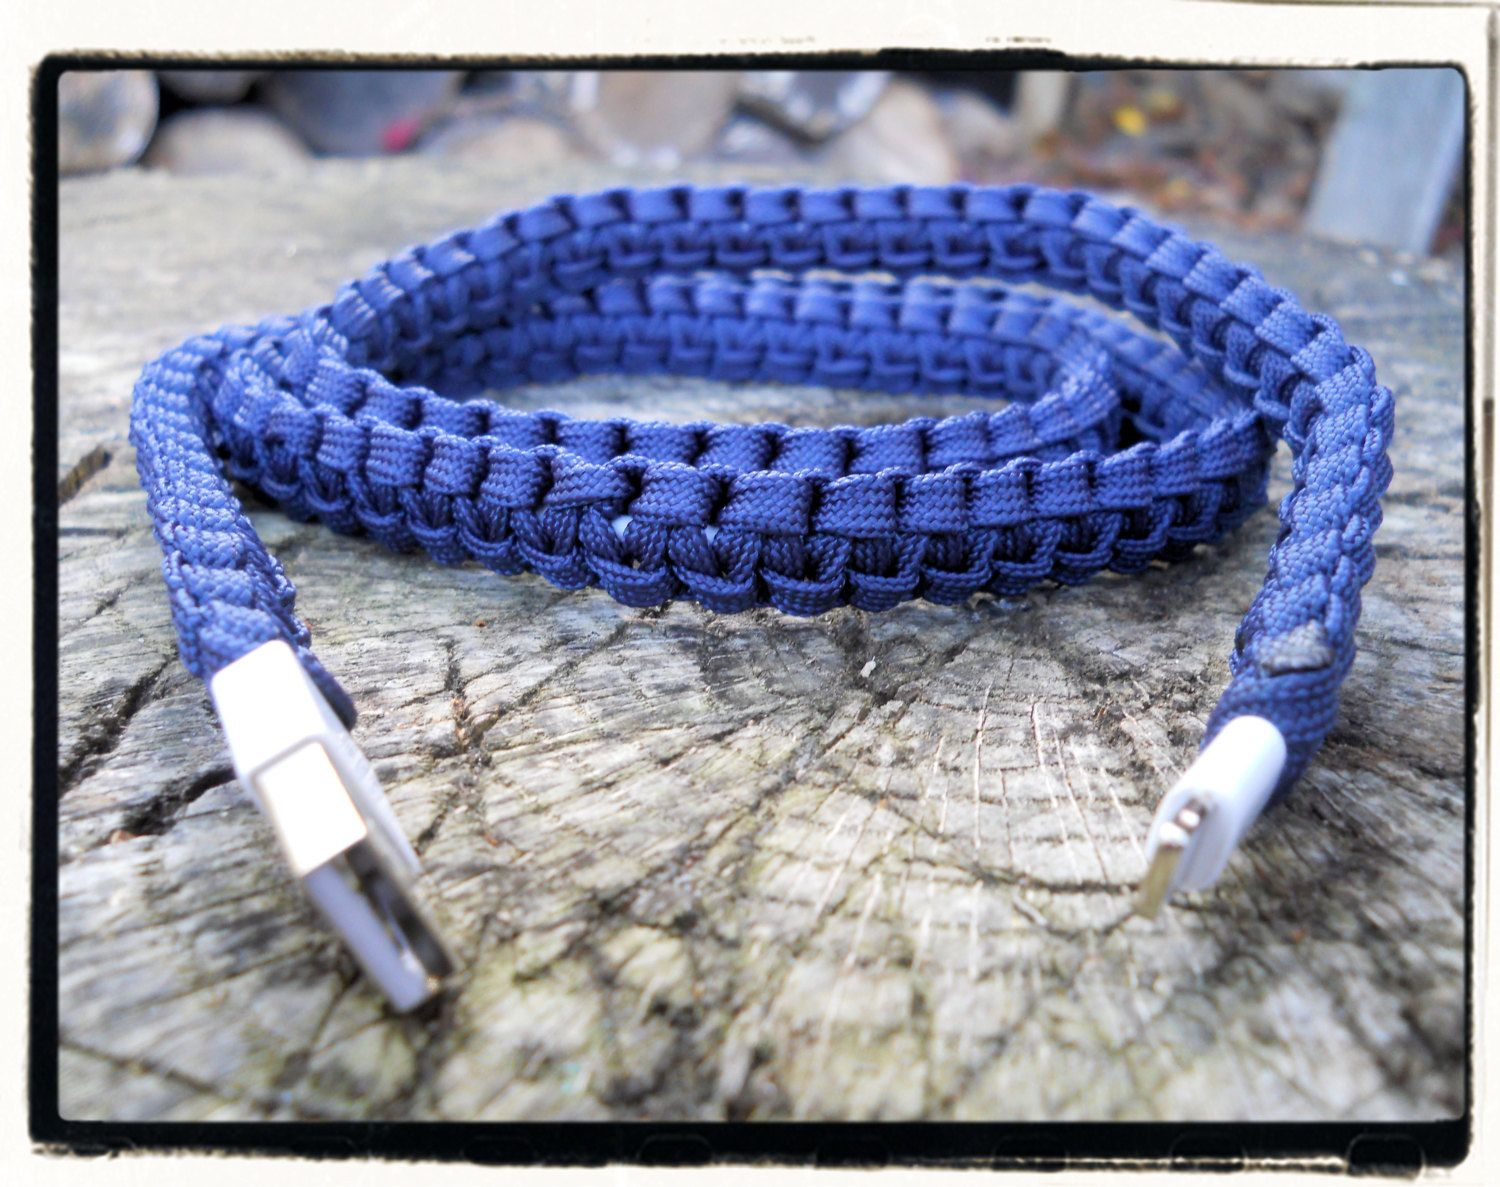 New!!! SLIM iPhone Paracord Wrapped Charger  by LifeLinesSurvival on Etsy